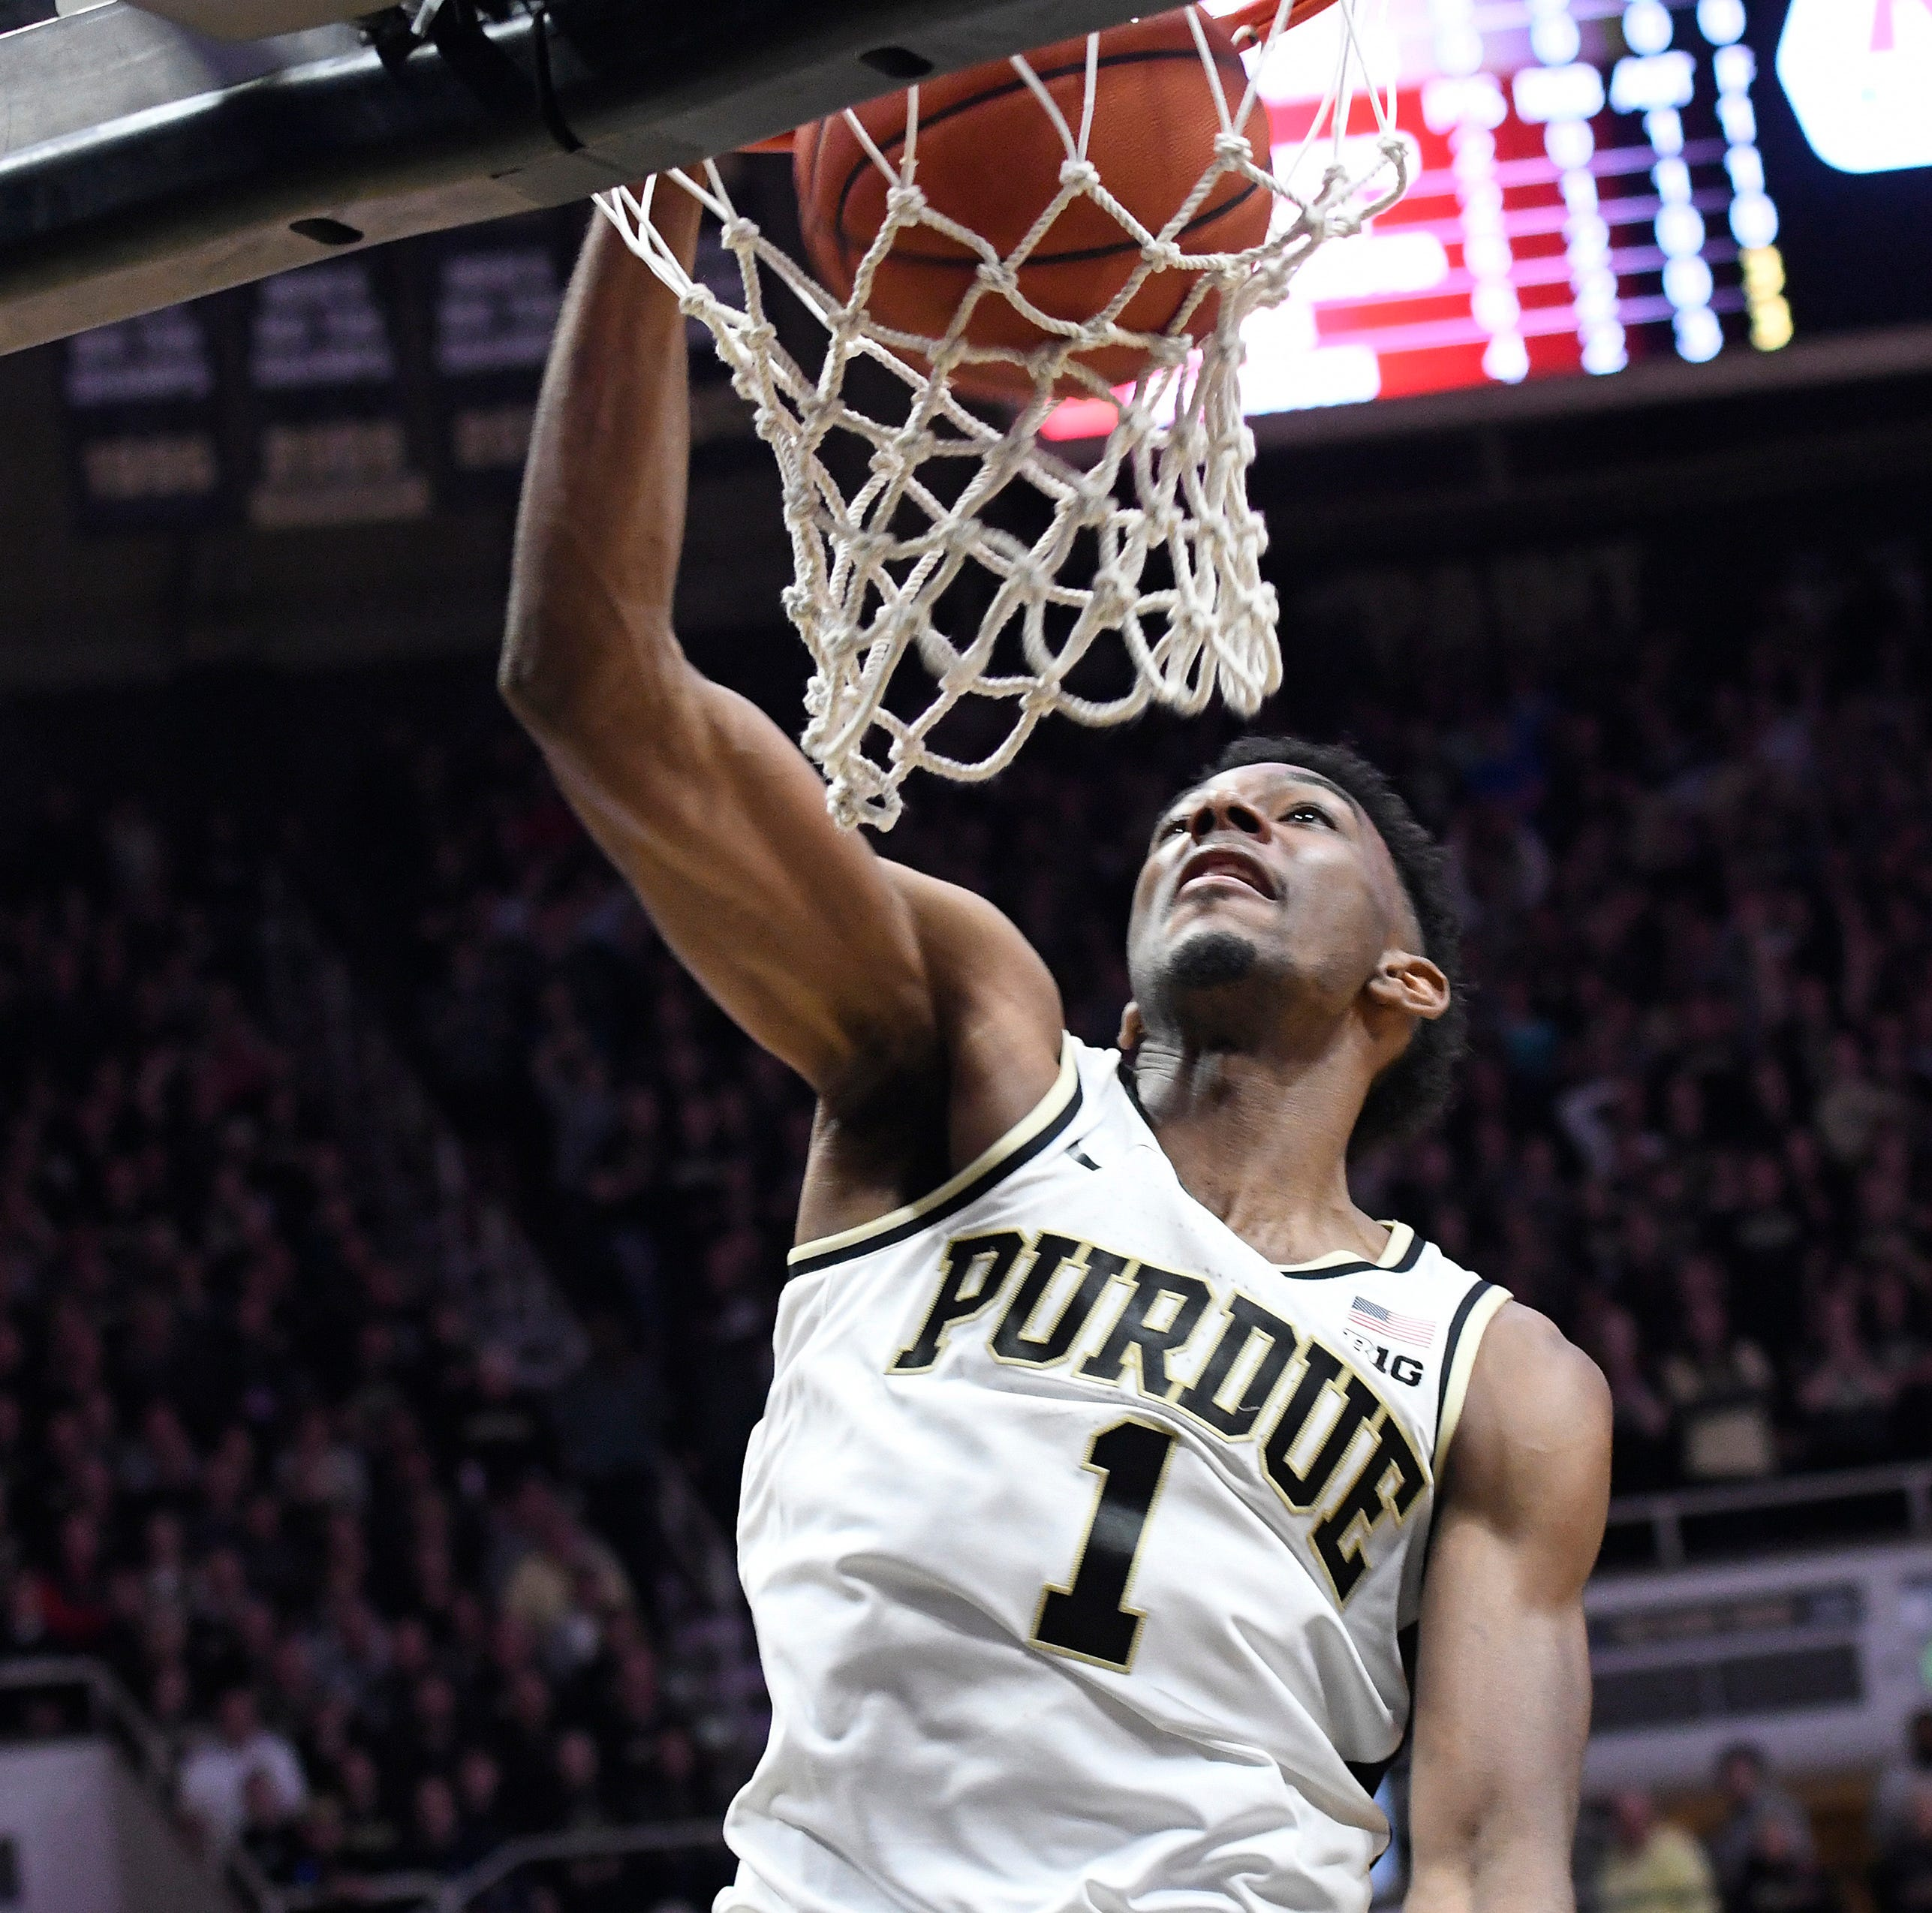 Insider: Purdue basketball's emphatic rout of Ohio State sets the stage for more